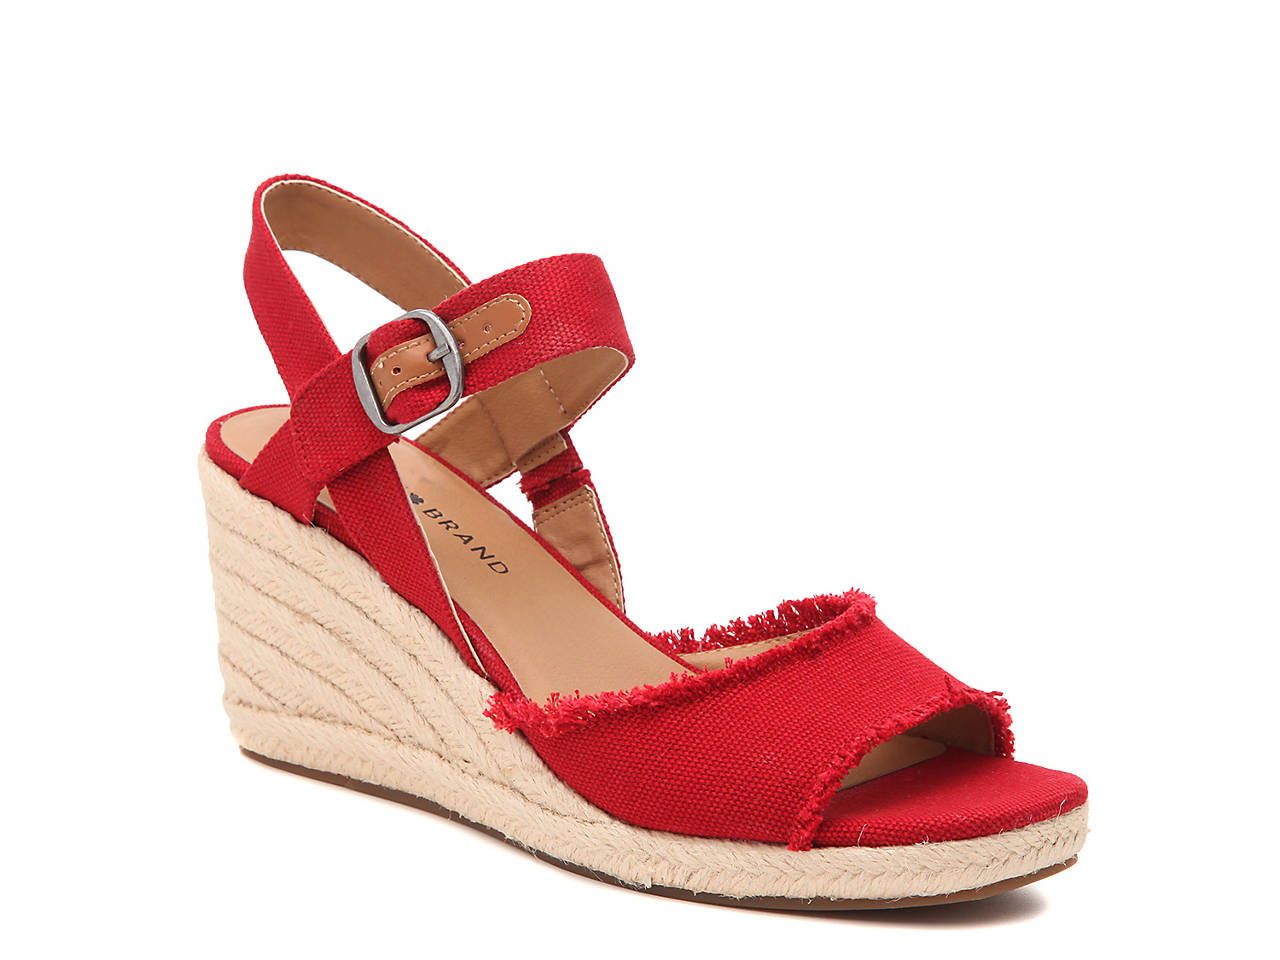 4262cb317 Lucky Brand Mindra Espadrille Wedge Sandal Women's Shoes | DSW